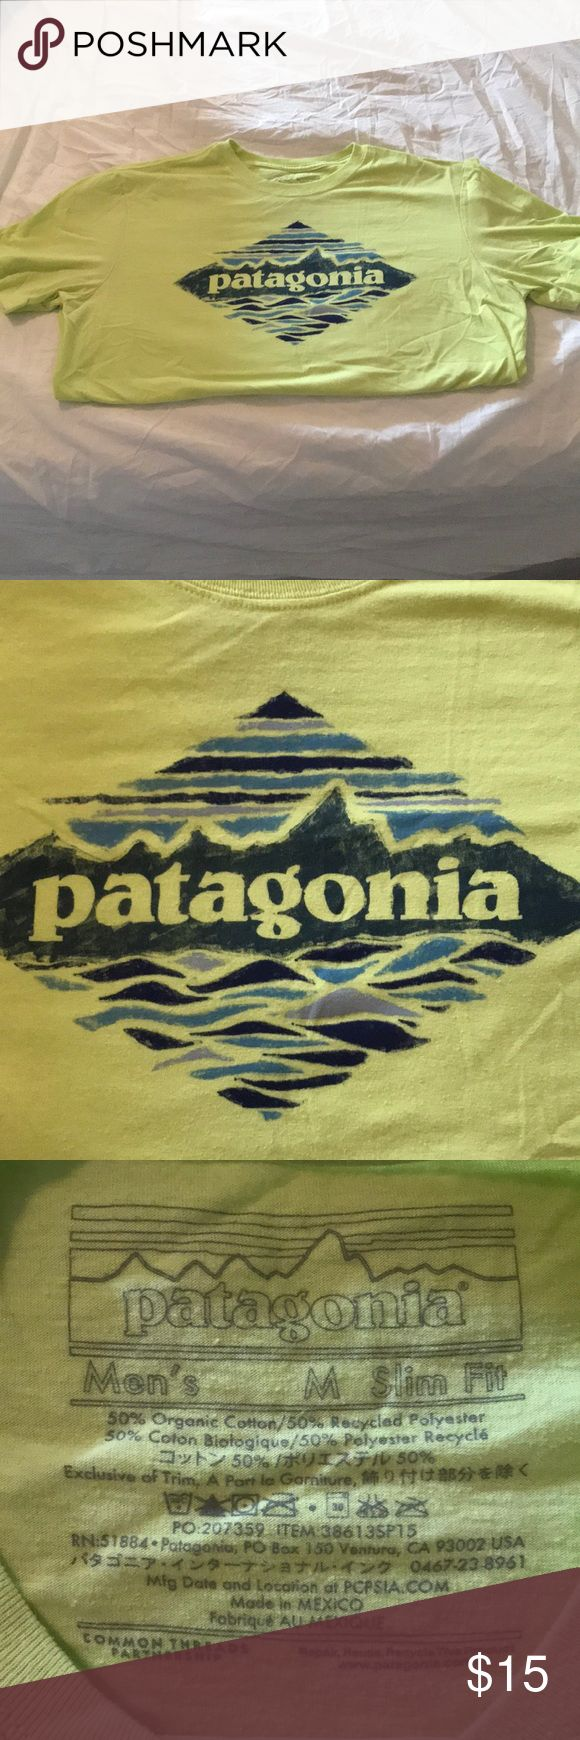 Patagonia t shirt Lime green fitted Patagonia t shirt. It's slim fit so fits more like a small. It's technically a men's shirt but of course is a gender neutral shirt Patagonia Shirts Tees - Short Sleeve